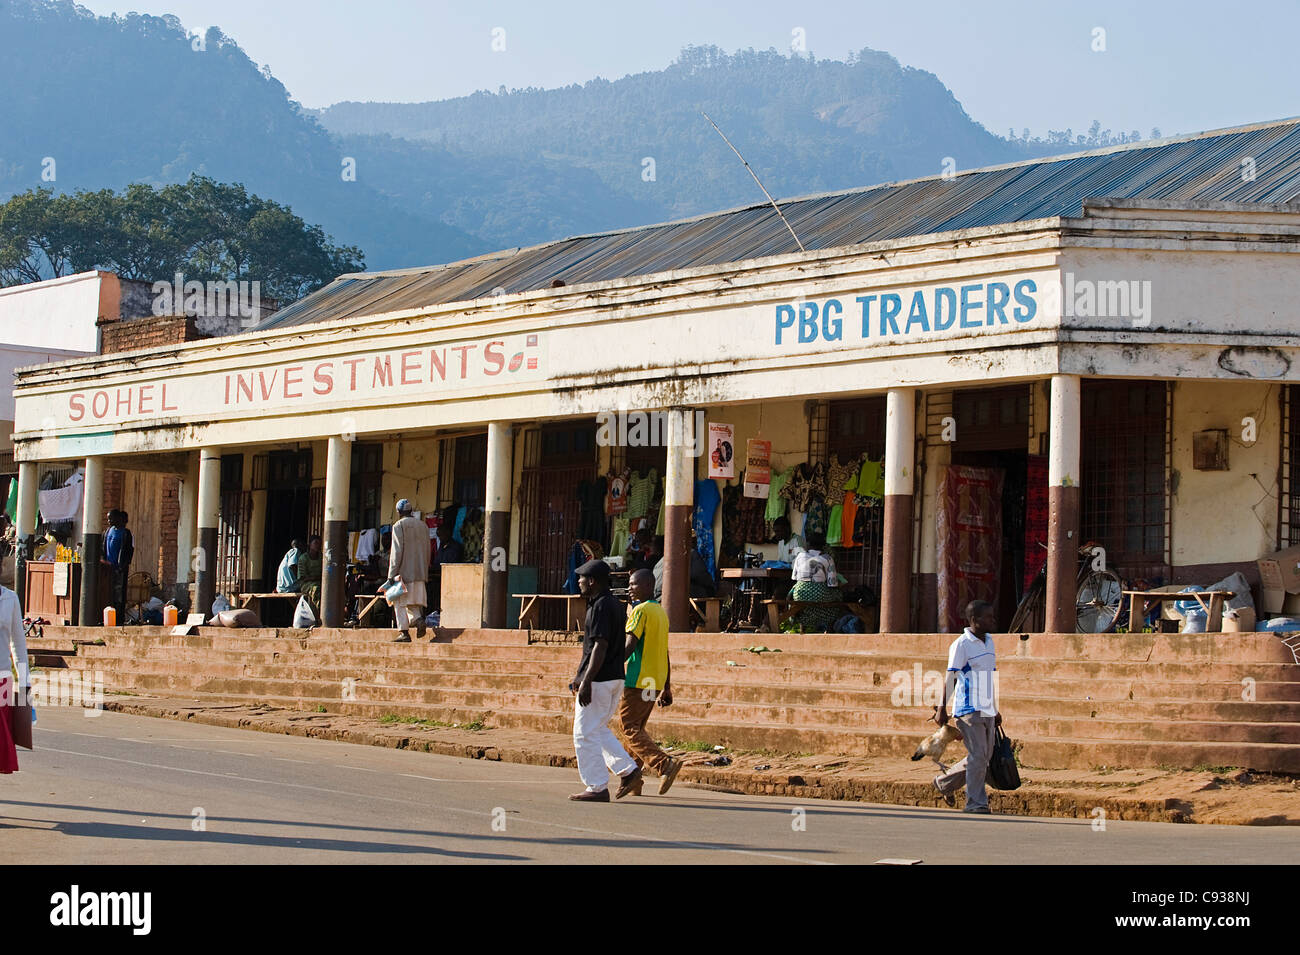 Malawi.  Zomba.  Painted shop fronts advertise their wares in the town of Zomba, once capital of Malawi. - Stock Image